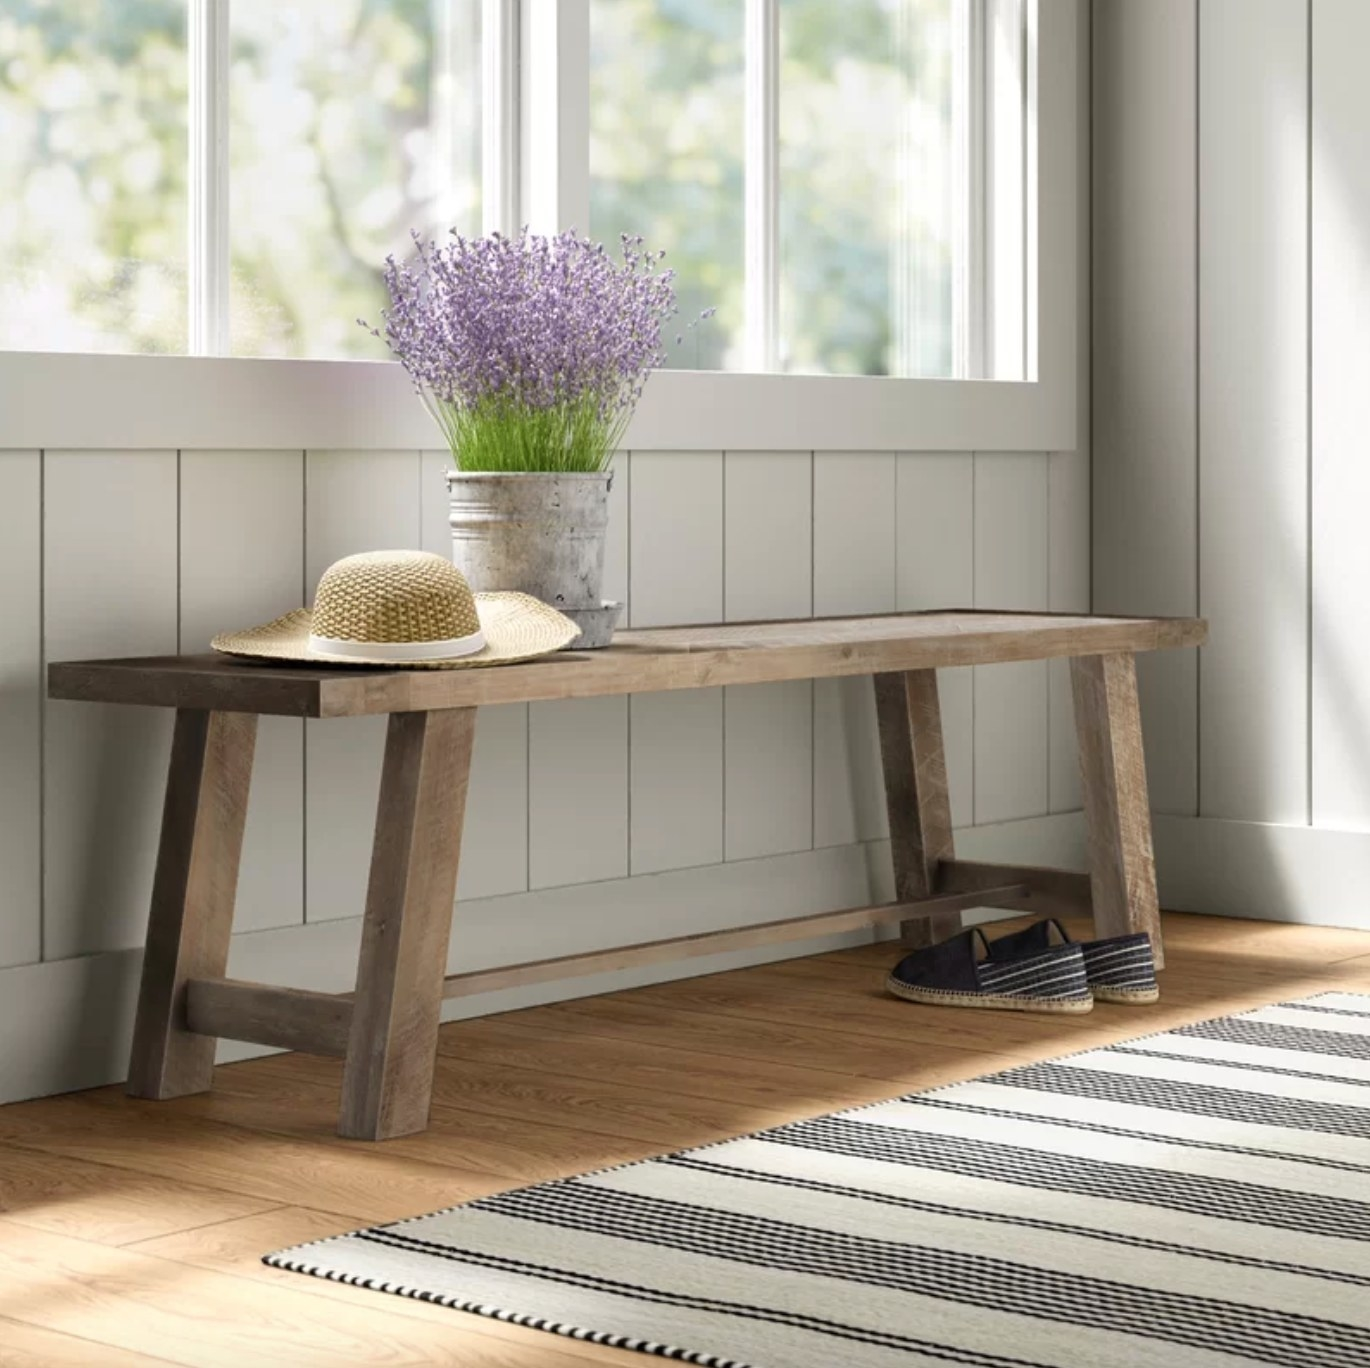 The wood bench in weathered natural finish